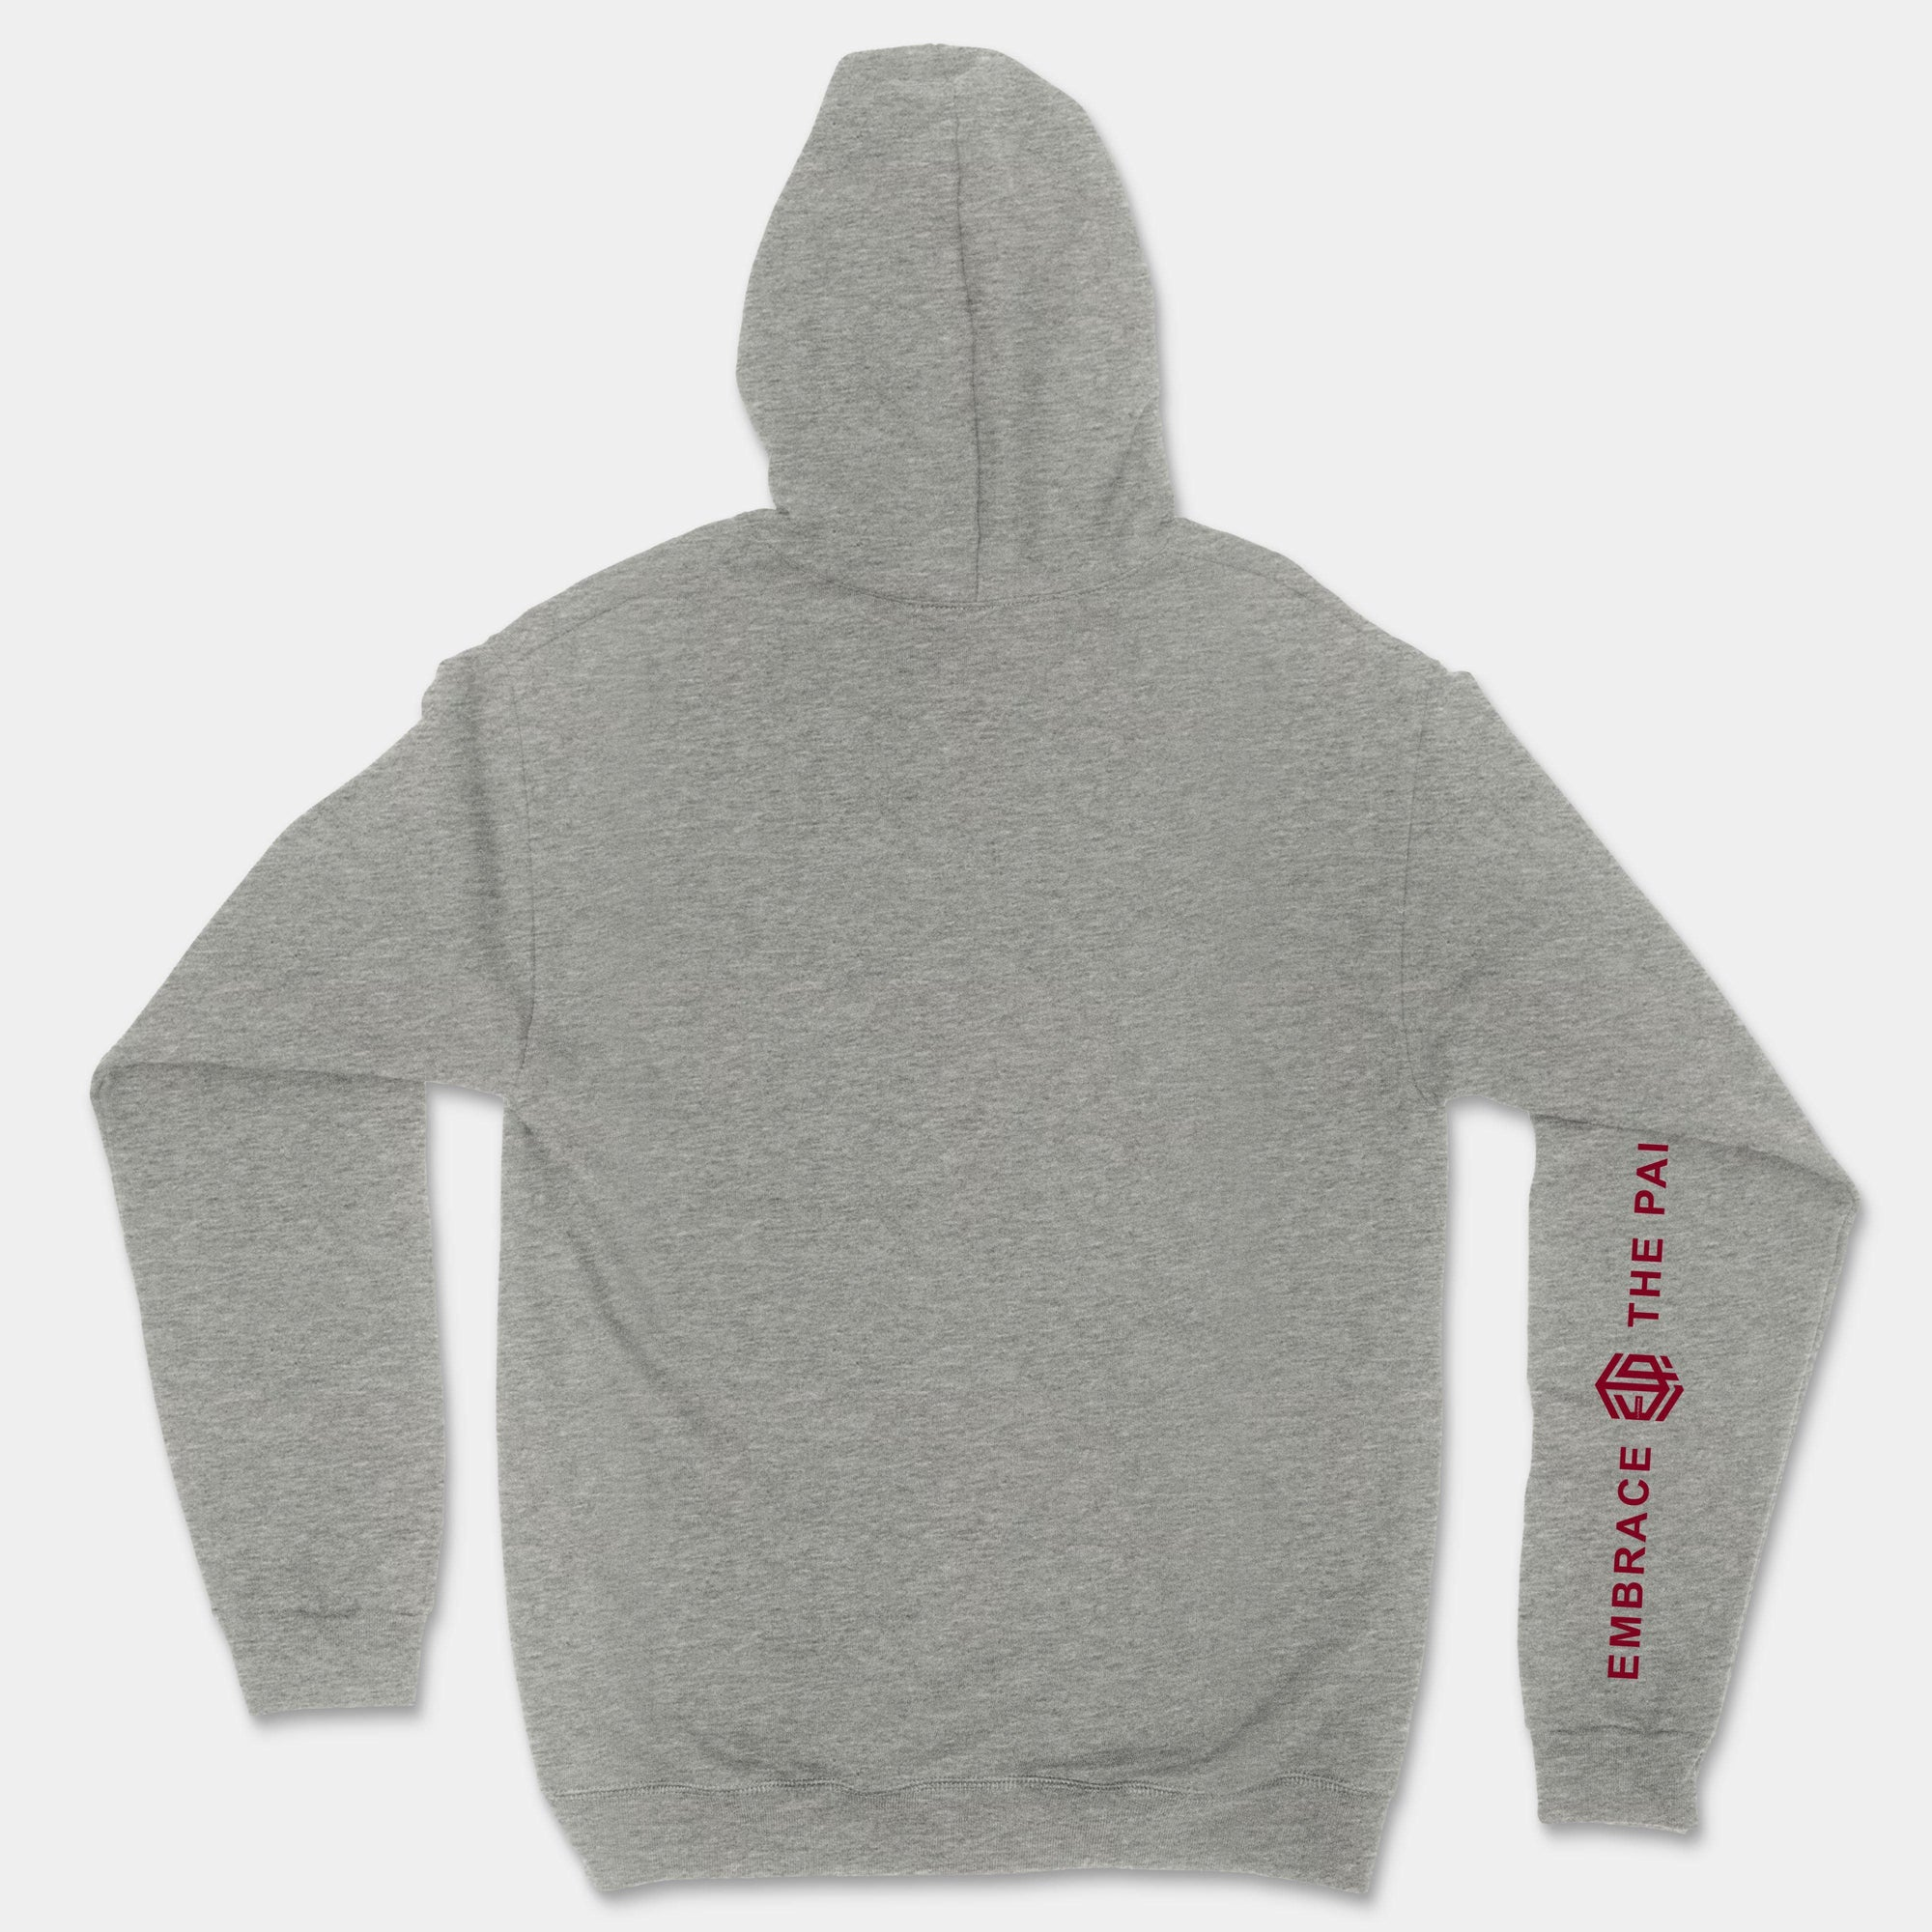 Embrace The Pain ETP - Pullover Unisex Hoodie (Gray)